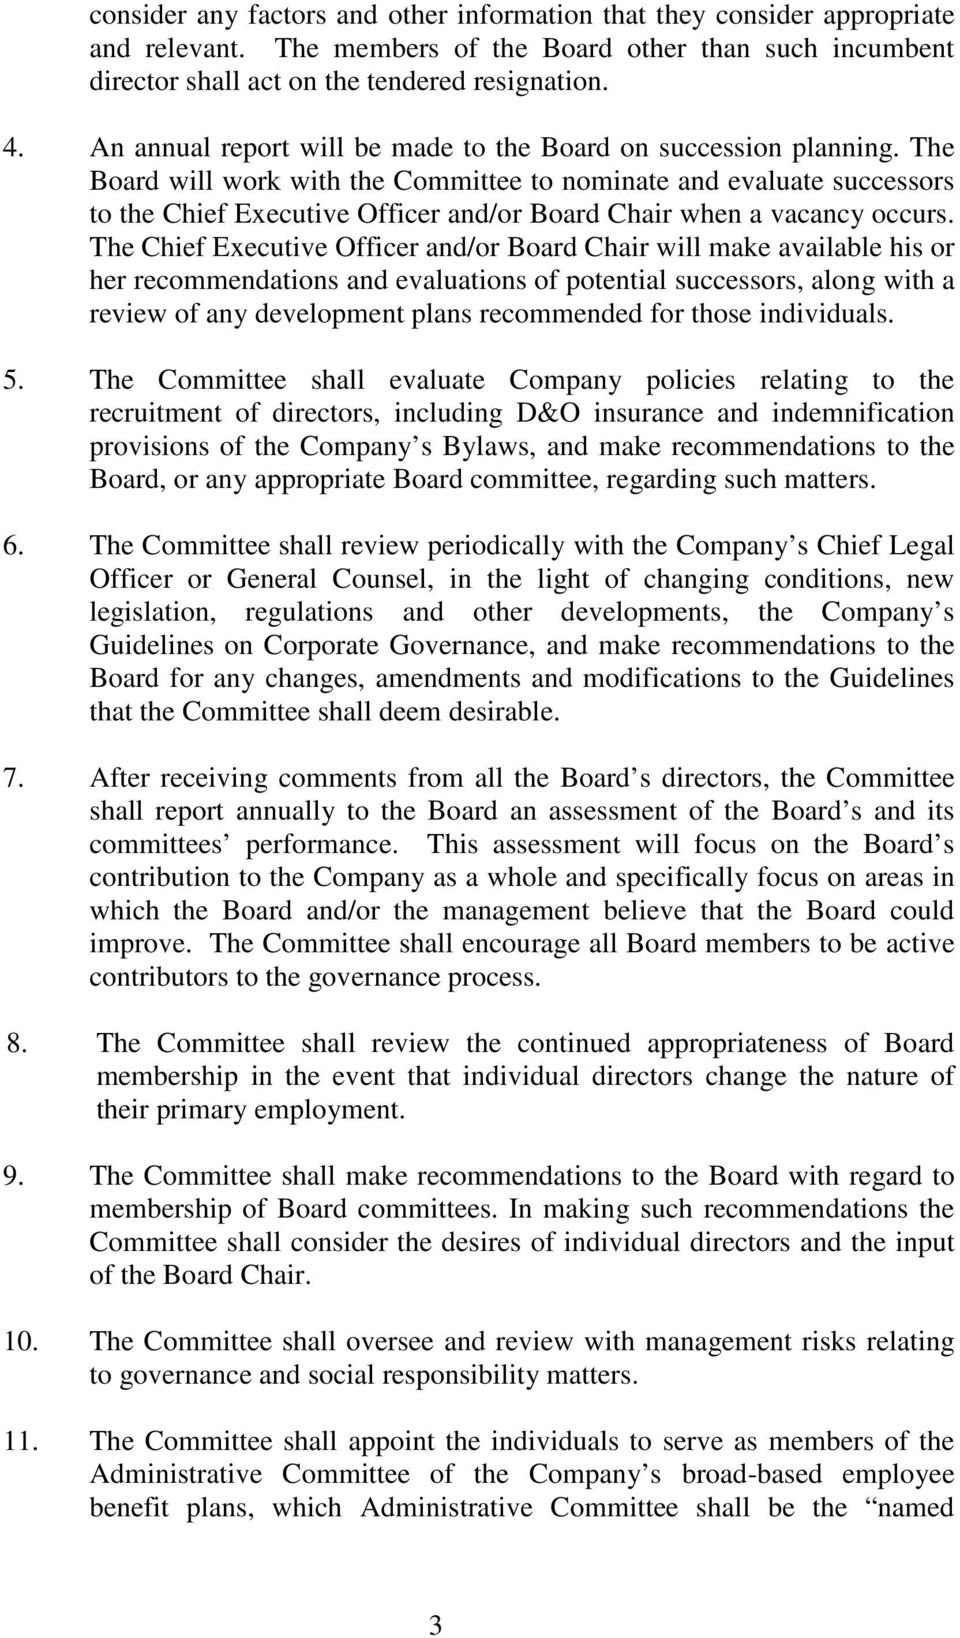 The Board will work with the Committee to nominate and evaluate successors to the Chief Executive Officer and/or Board Chair when a vacancy occurs.